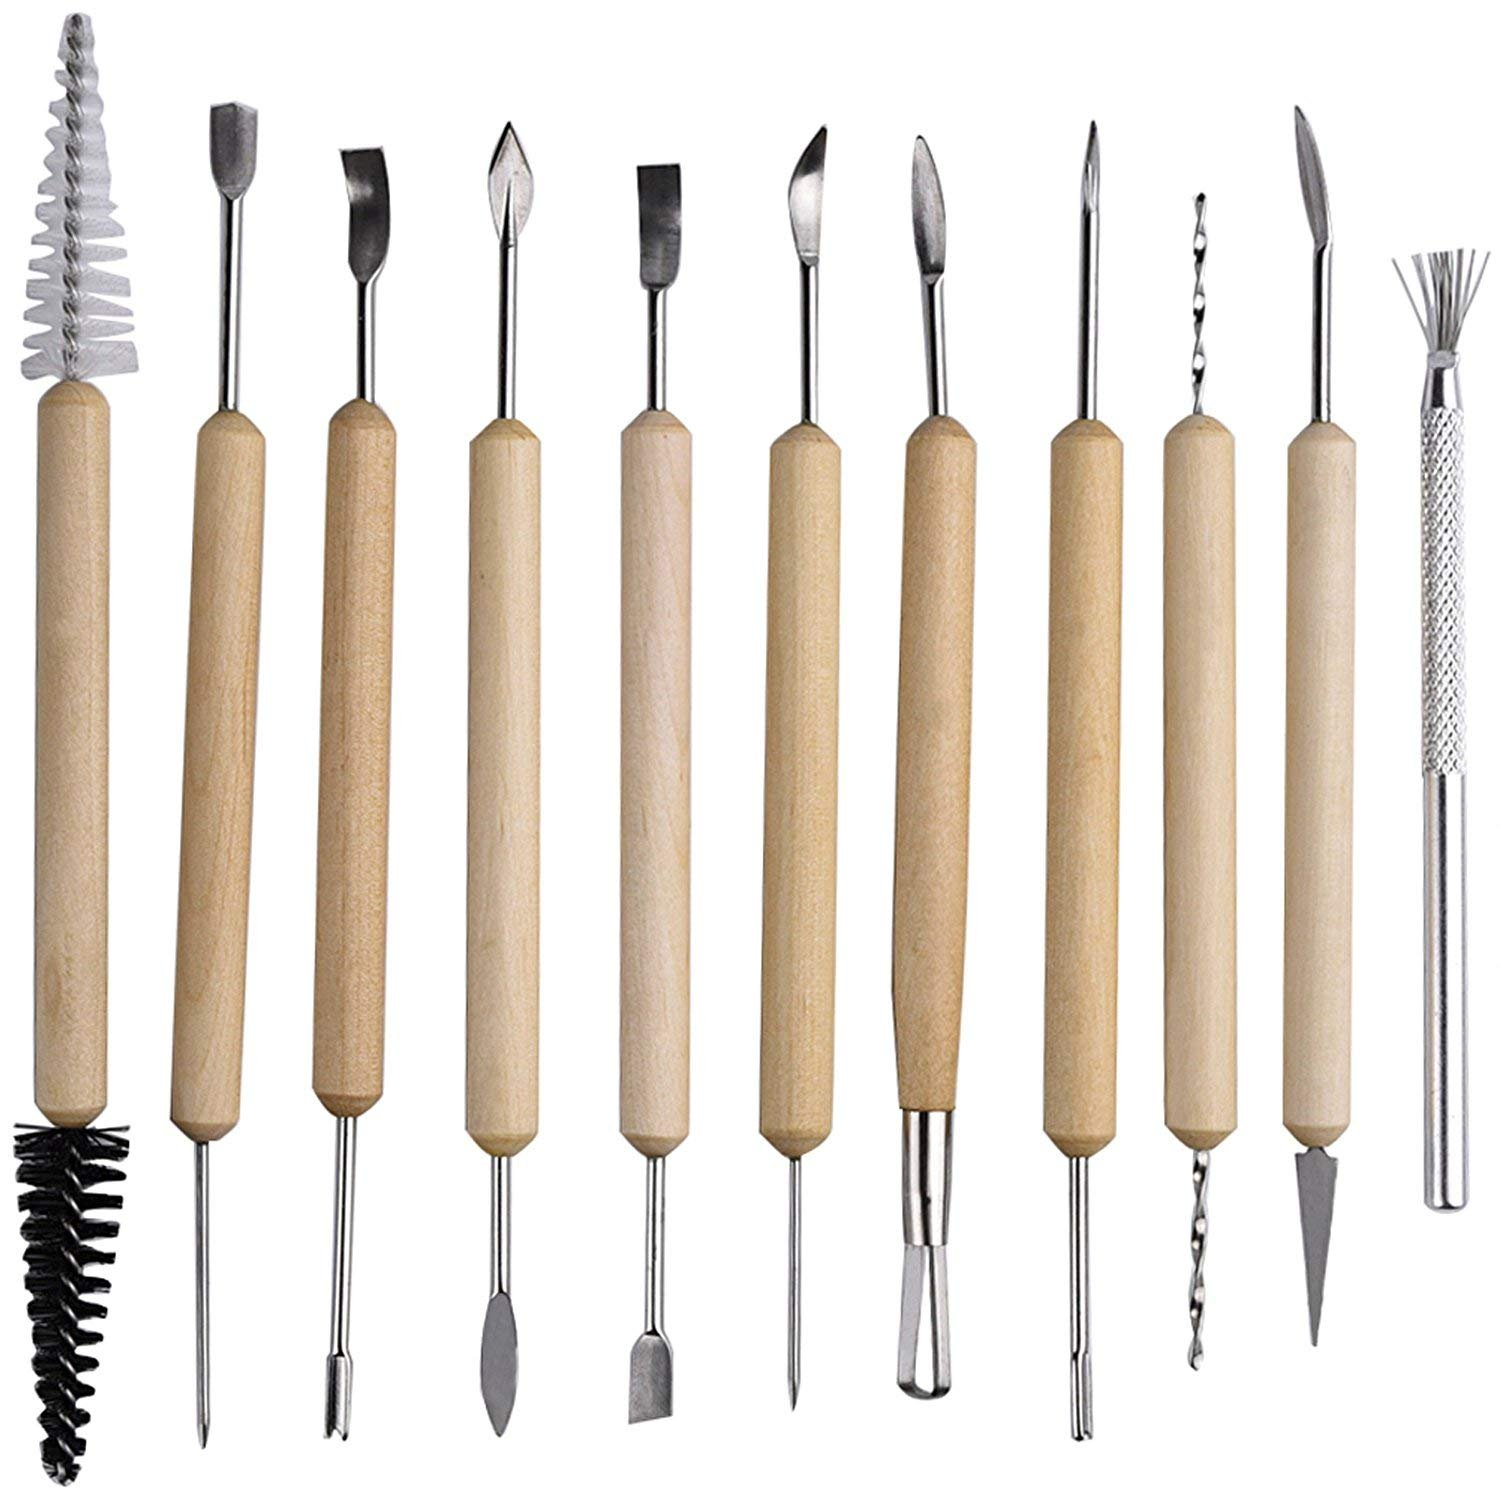 11Pcs Pottery Carving Tools Set Double Sided Ceramic Modeling Tools for Clay and Wood Sculpture Arts